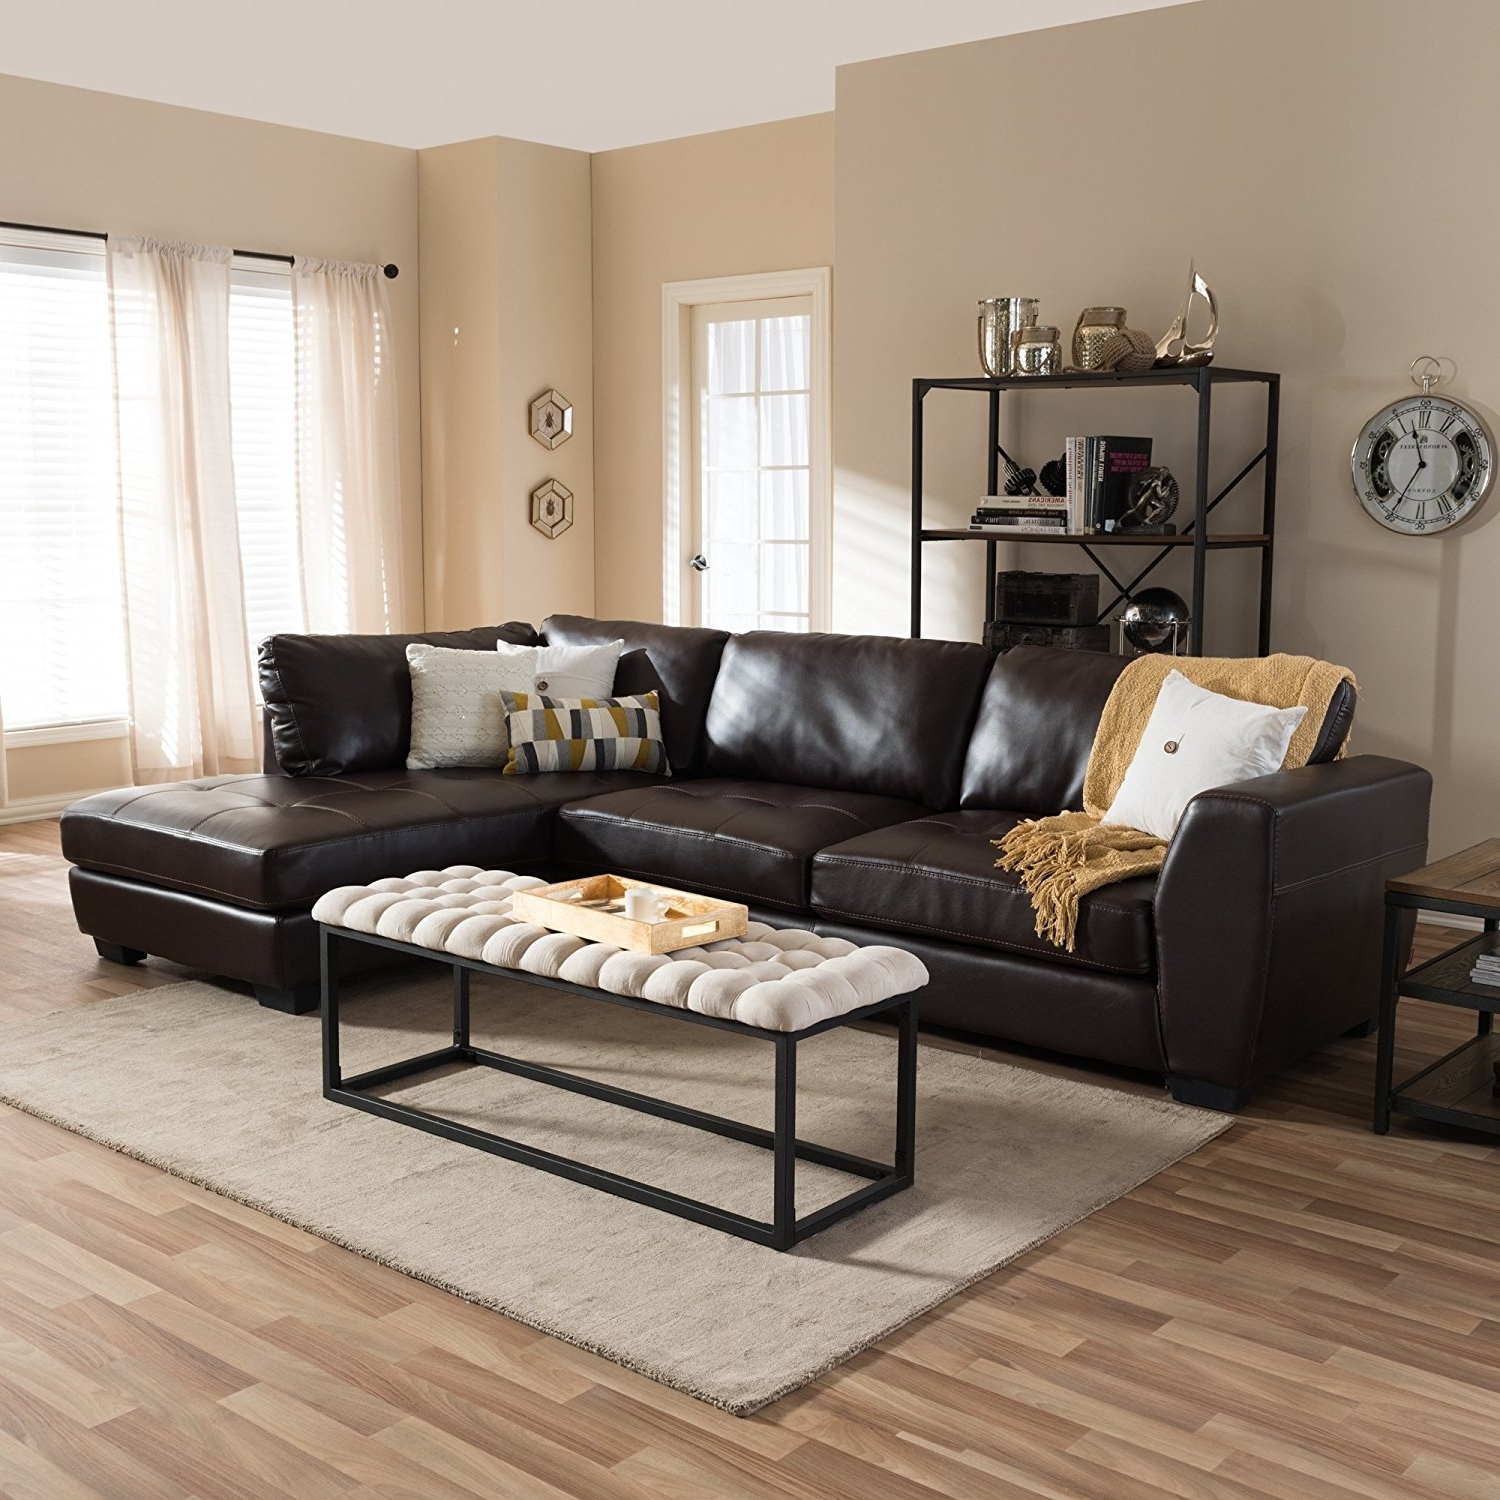 Preferred Amazon: Baxton Studio Orland Bonded Leather Modern Sectional Throughout Leather Sectional Sofas With Chaise (View 10 of 15)